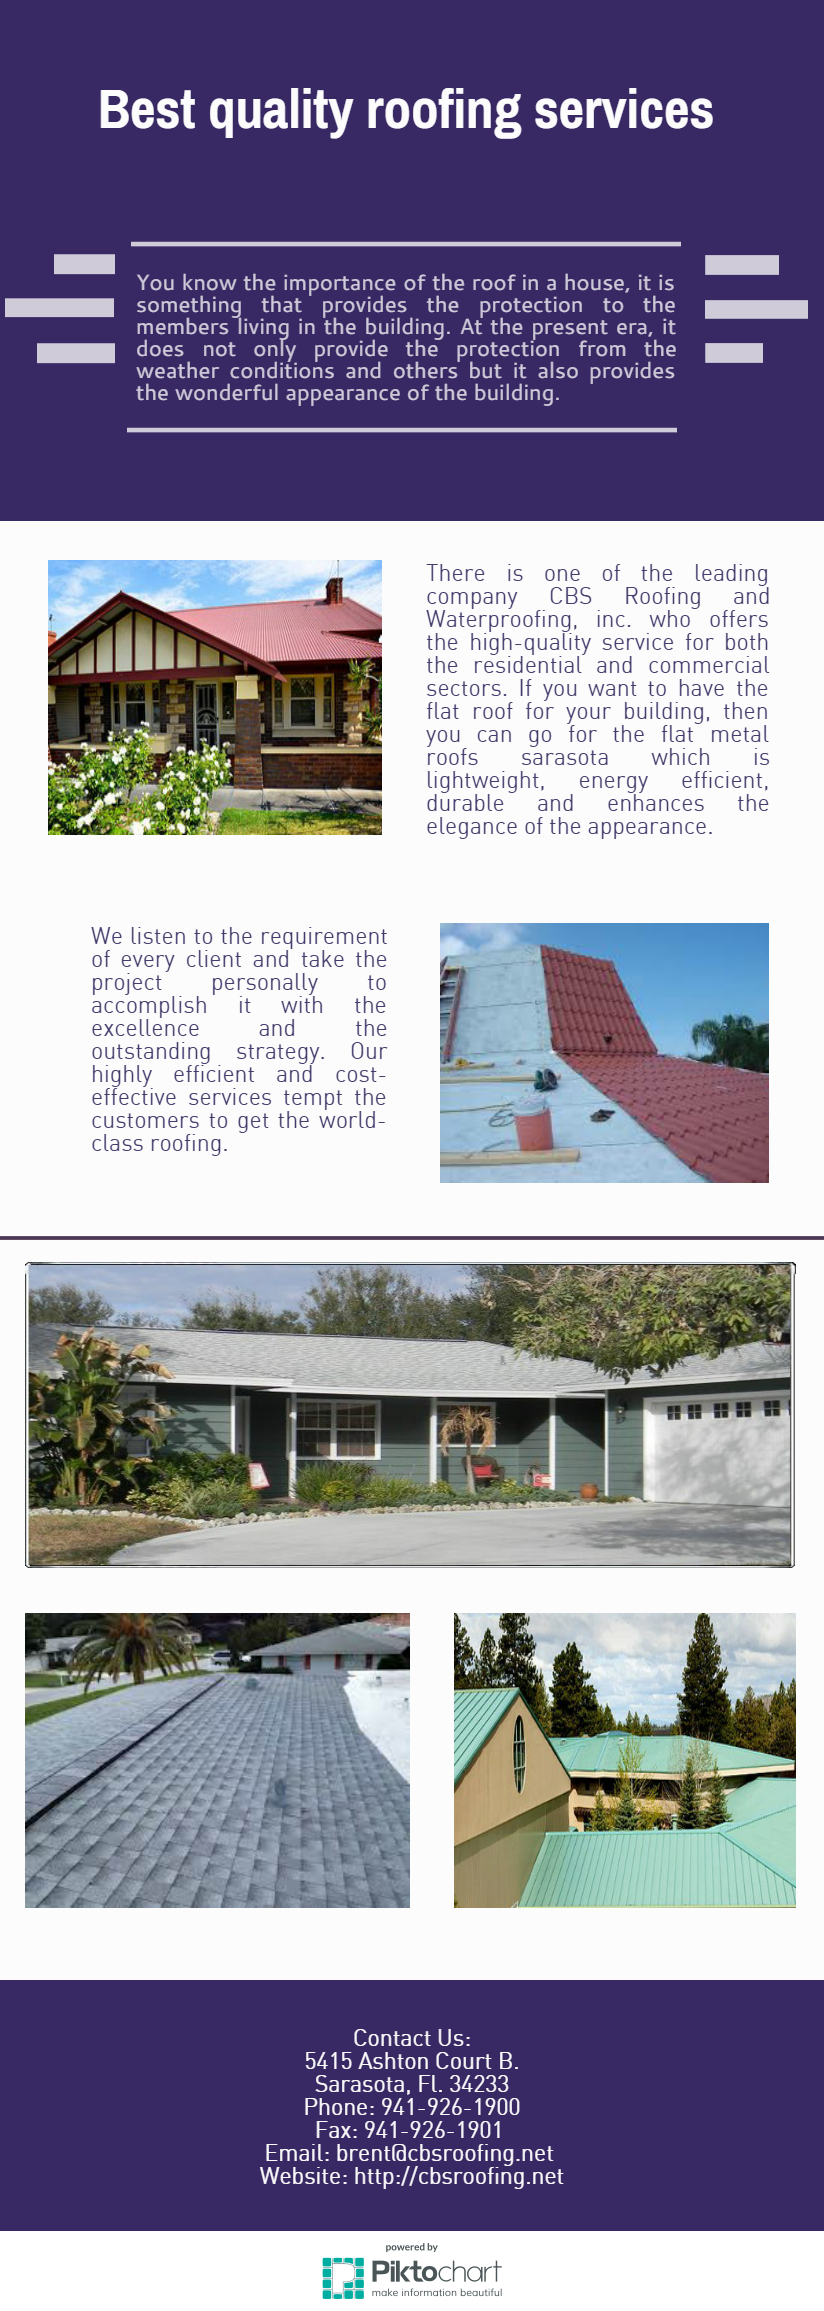 If You Want To Have The Flat Roof For Your Building Then You Can Go For The Flat Metal Roofs Sarasota Which Is Lightweight Ener Sarasota Roof Flat Metal Roof